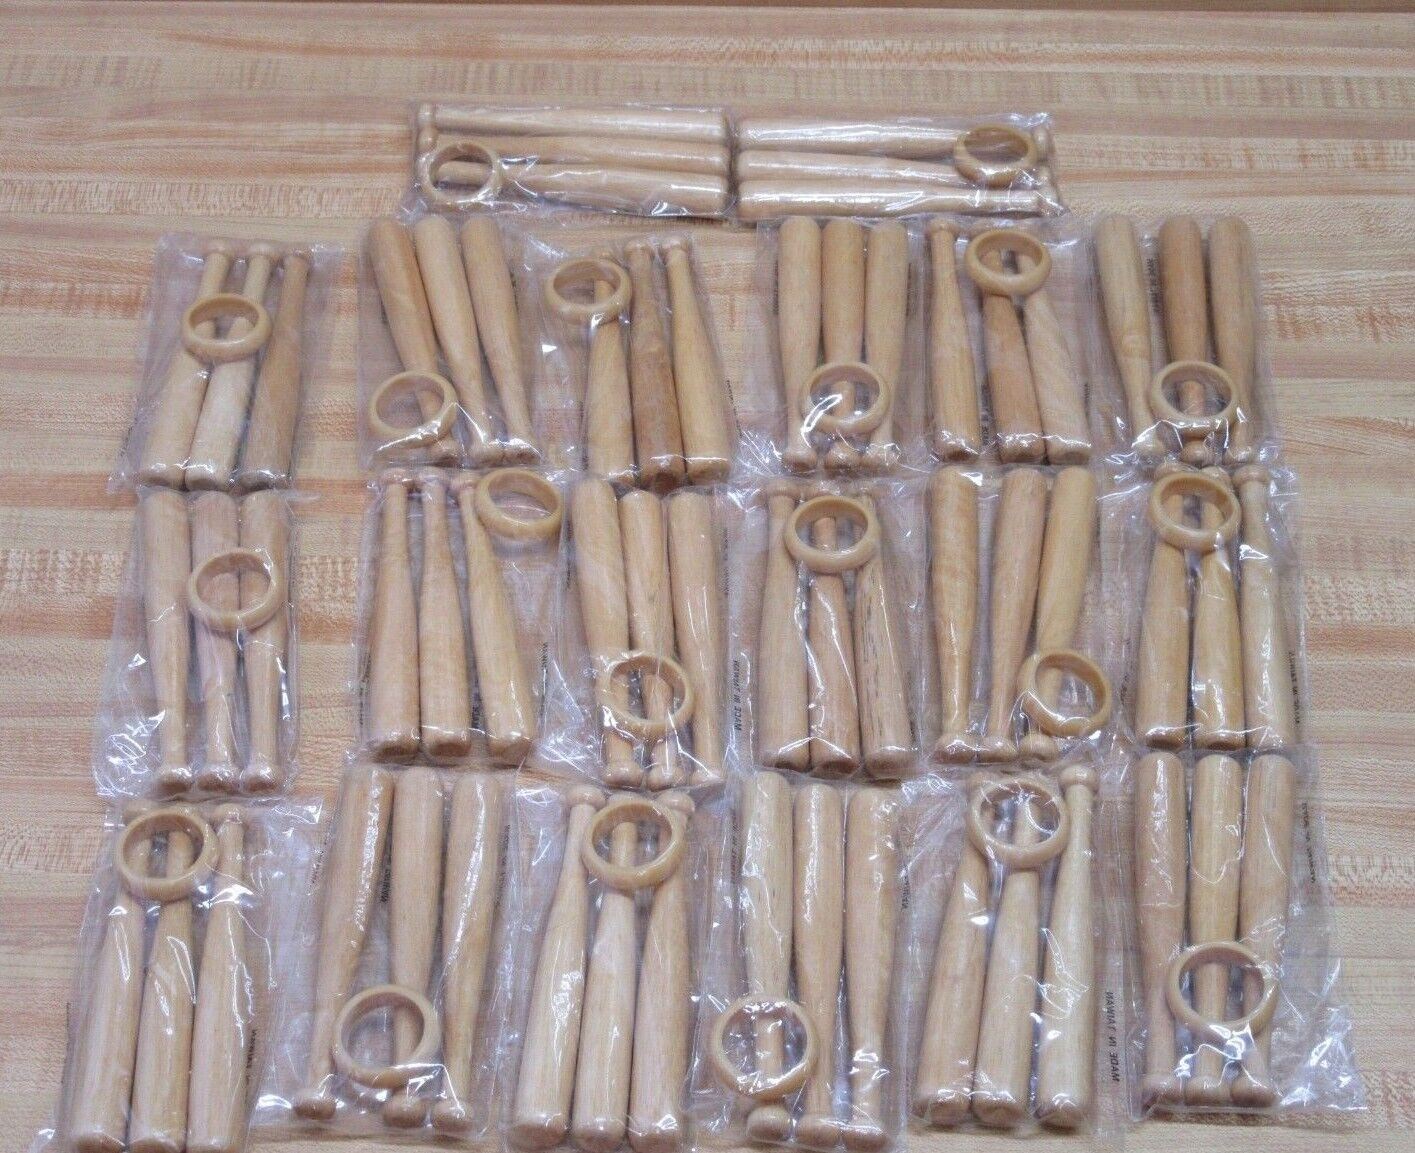 Lot of 60 Miniature 5 Wood Baseball Bats for Dolls or Personalized Team Gift